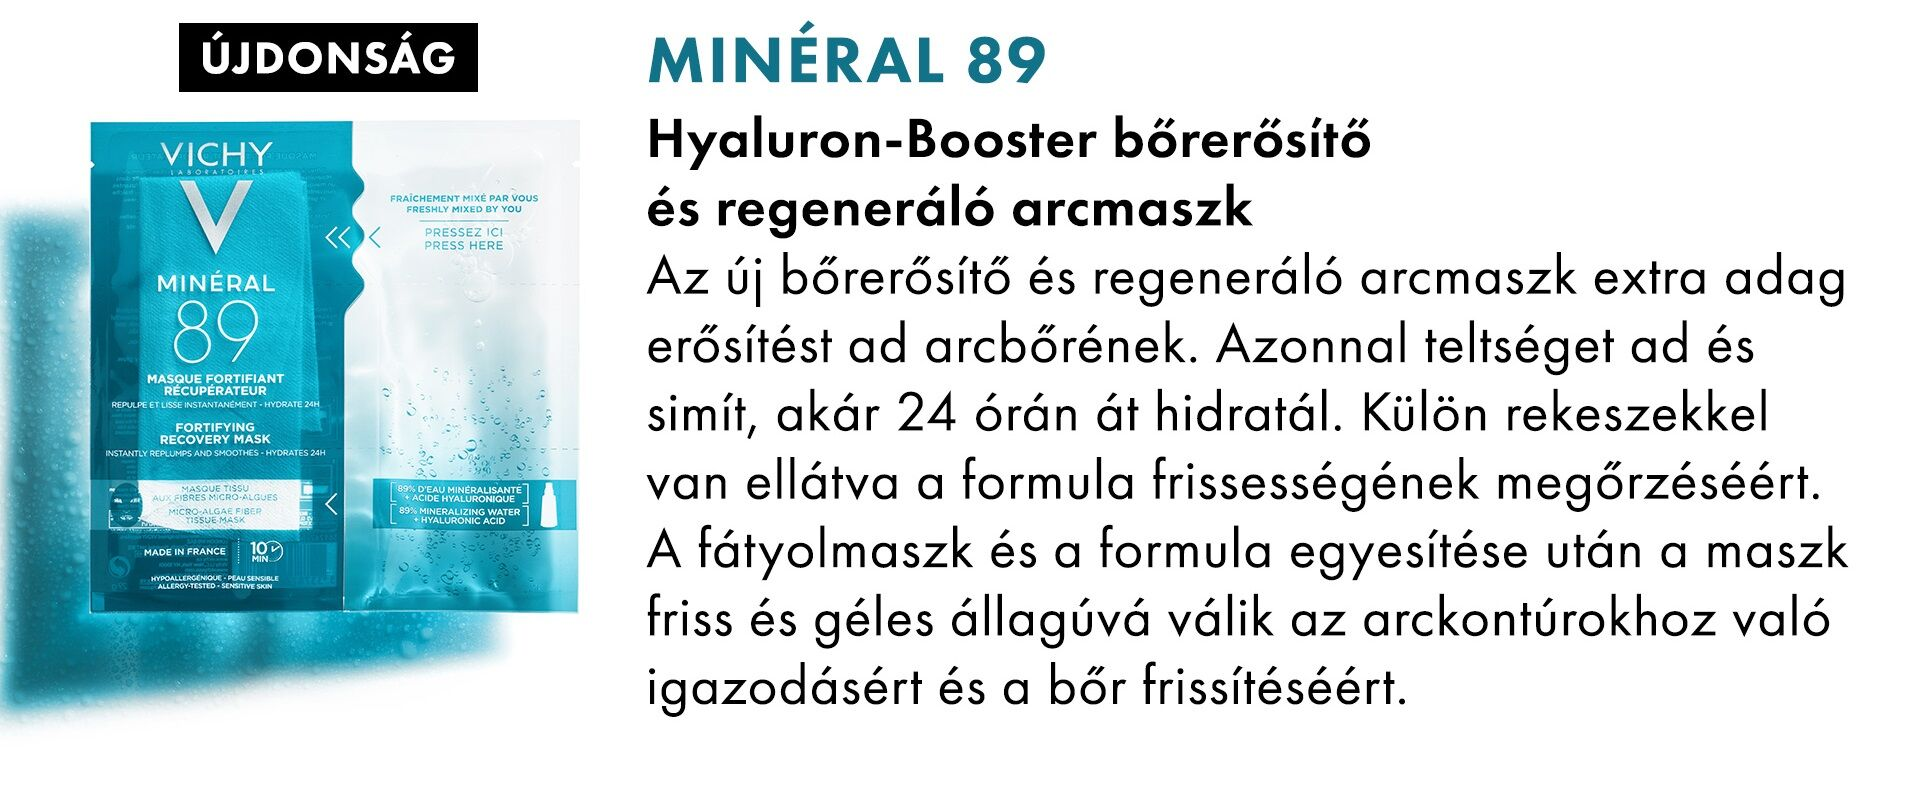 Vichy Minéral 89 Hyaluron Booster arcmaszk